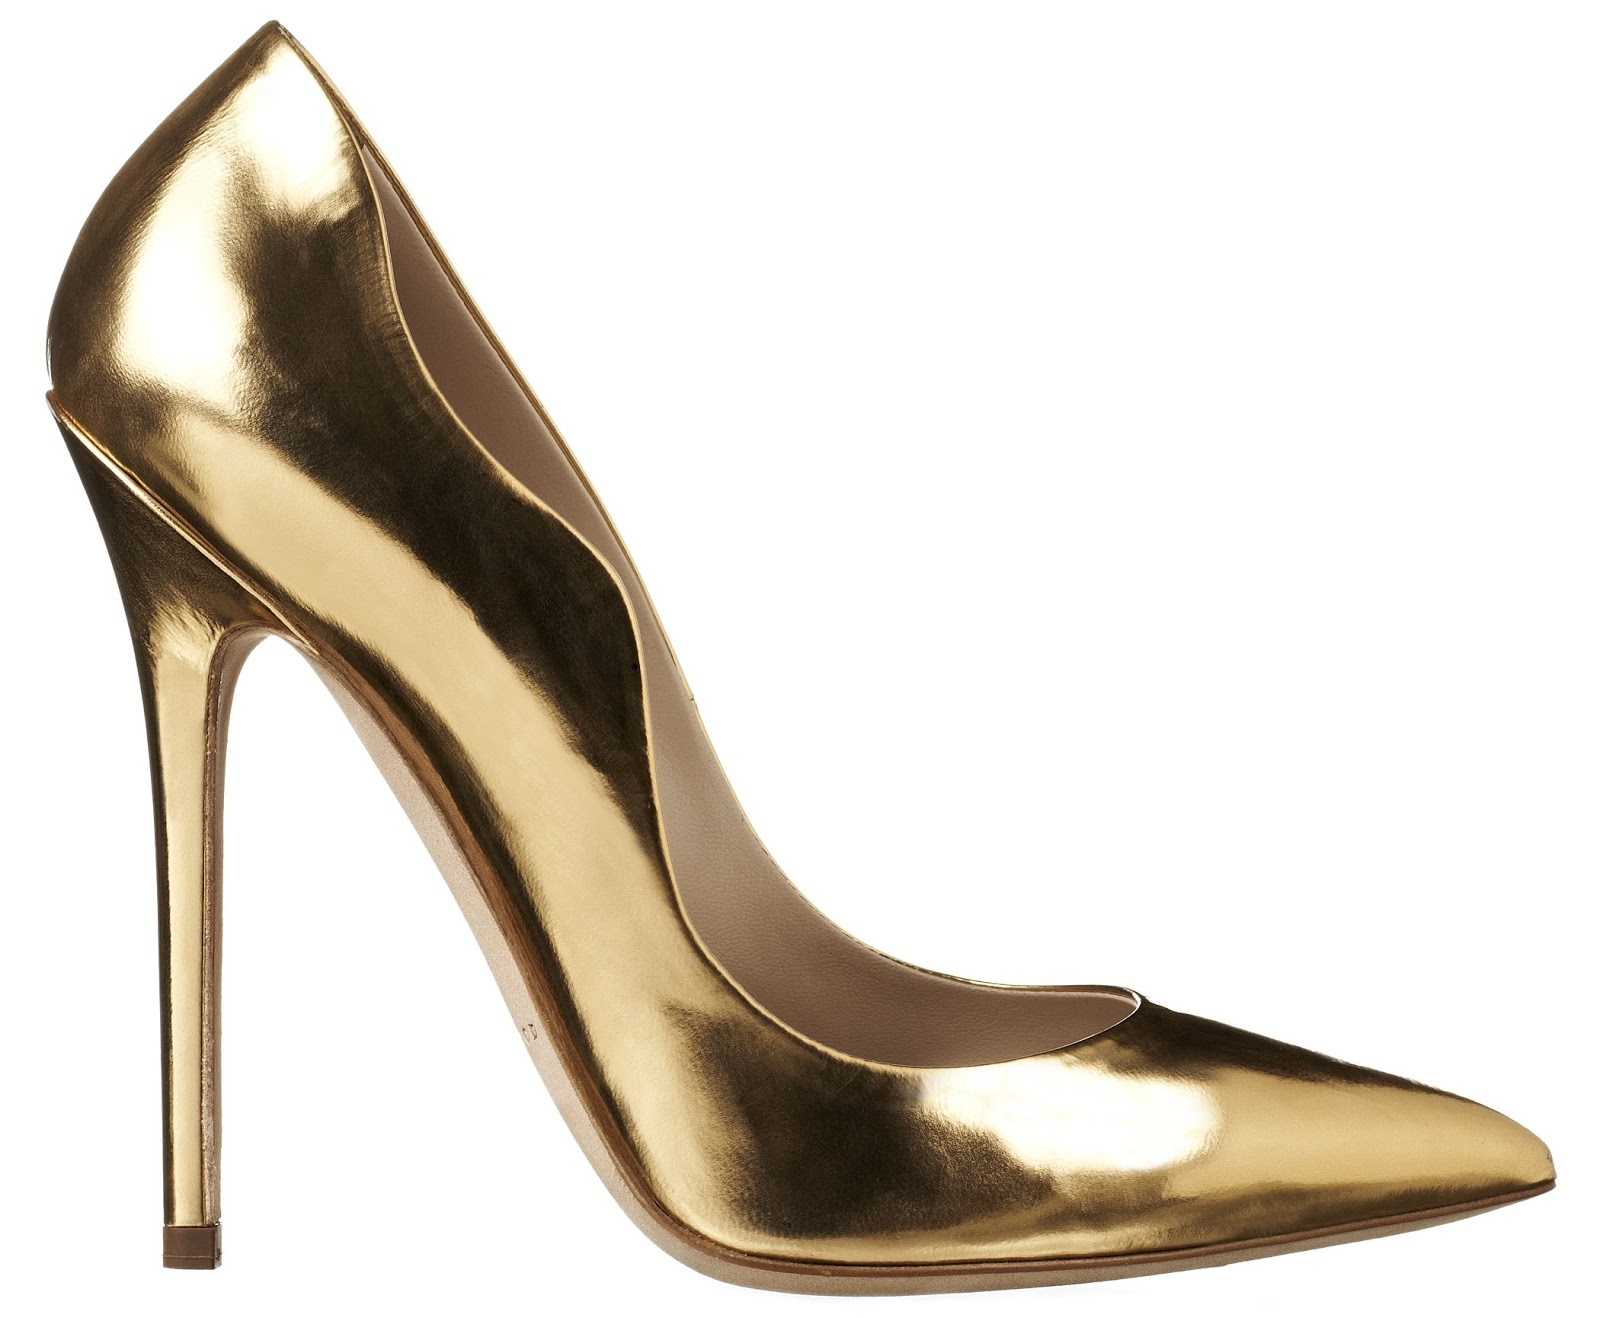 Shoe Luv : The Daily Heel: The Brian Atwood Besame Pump in Gold